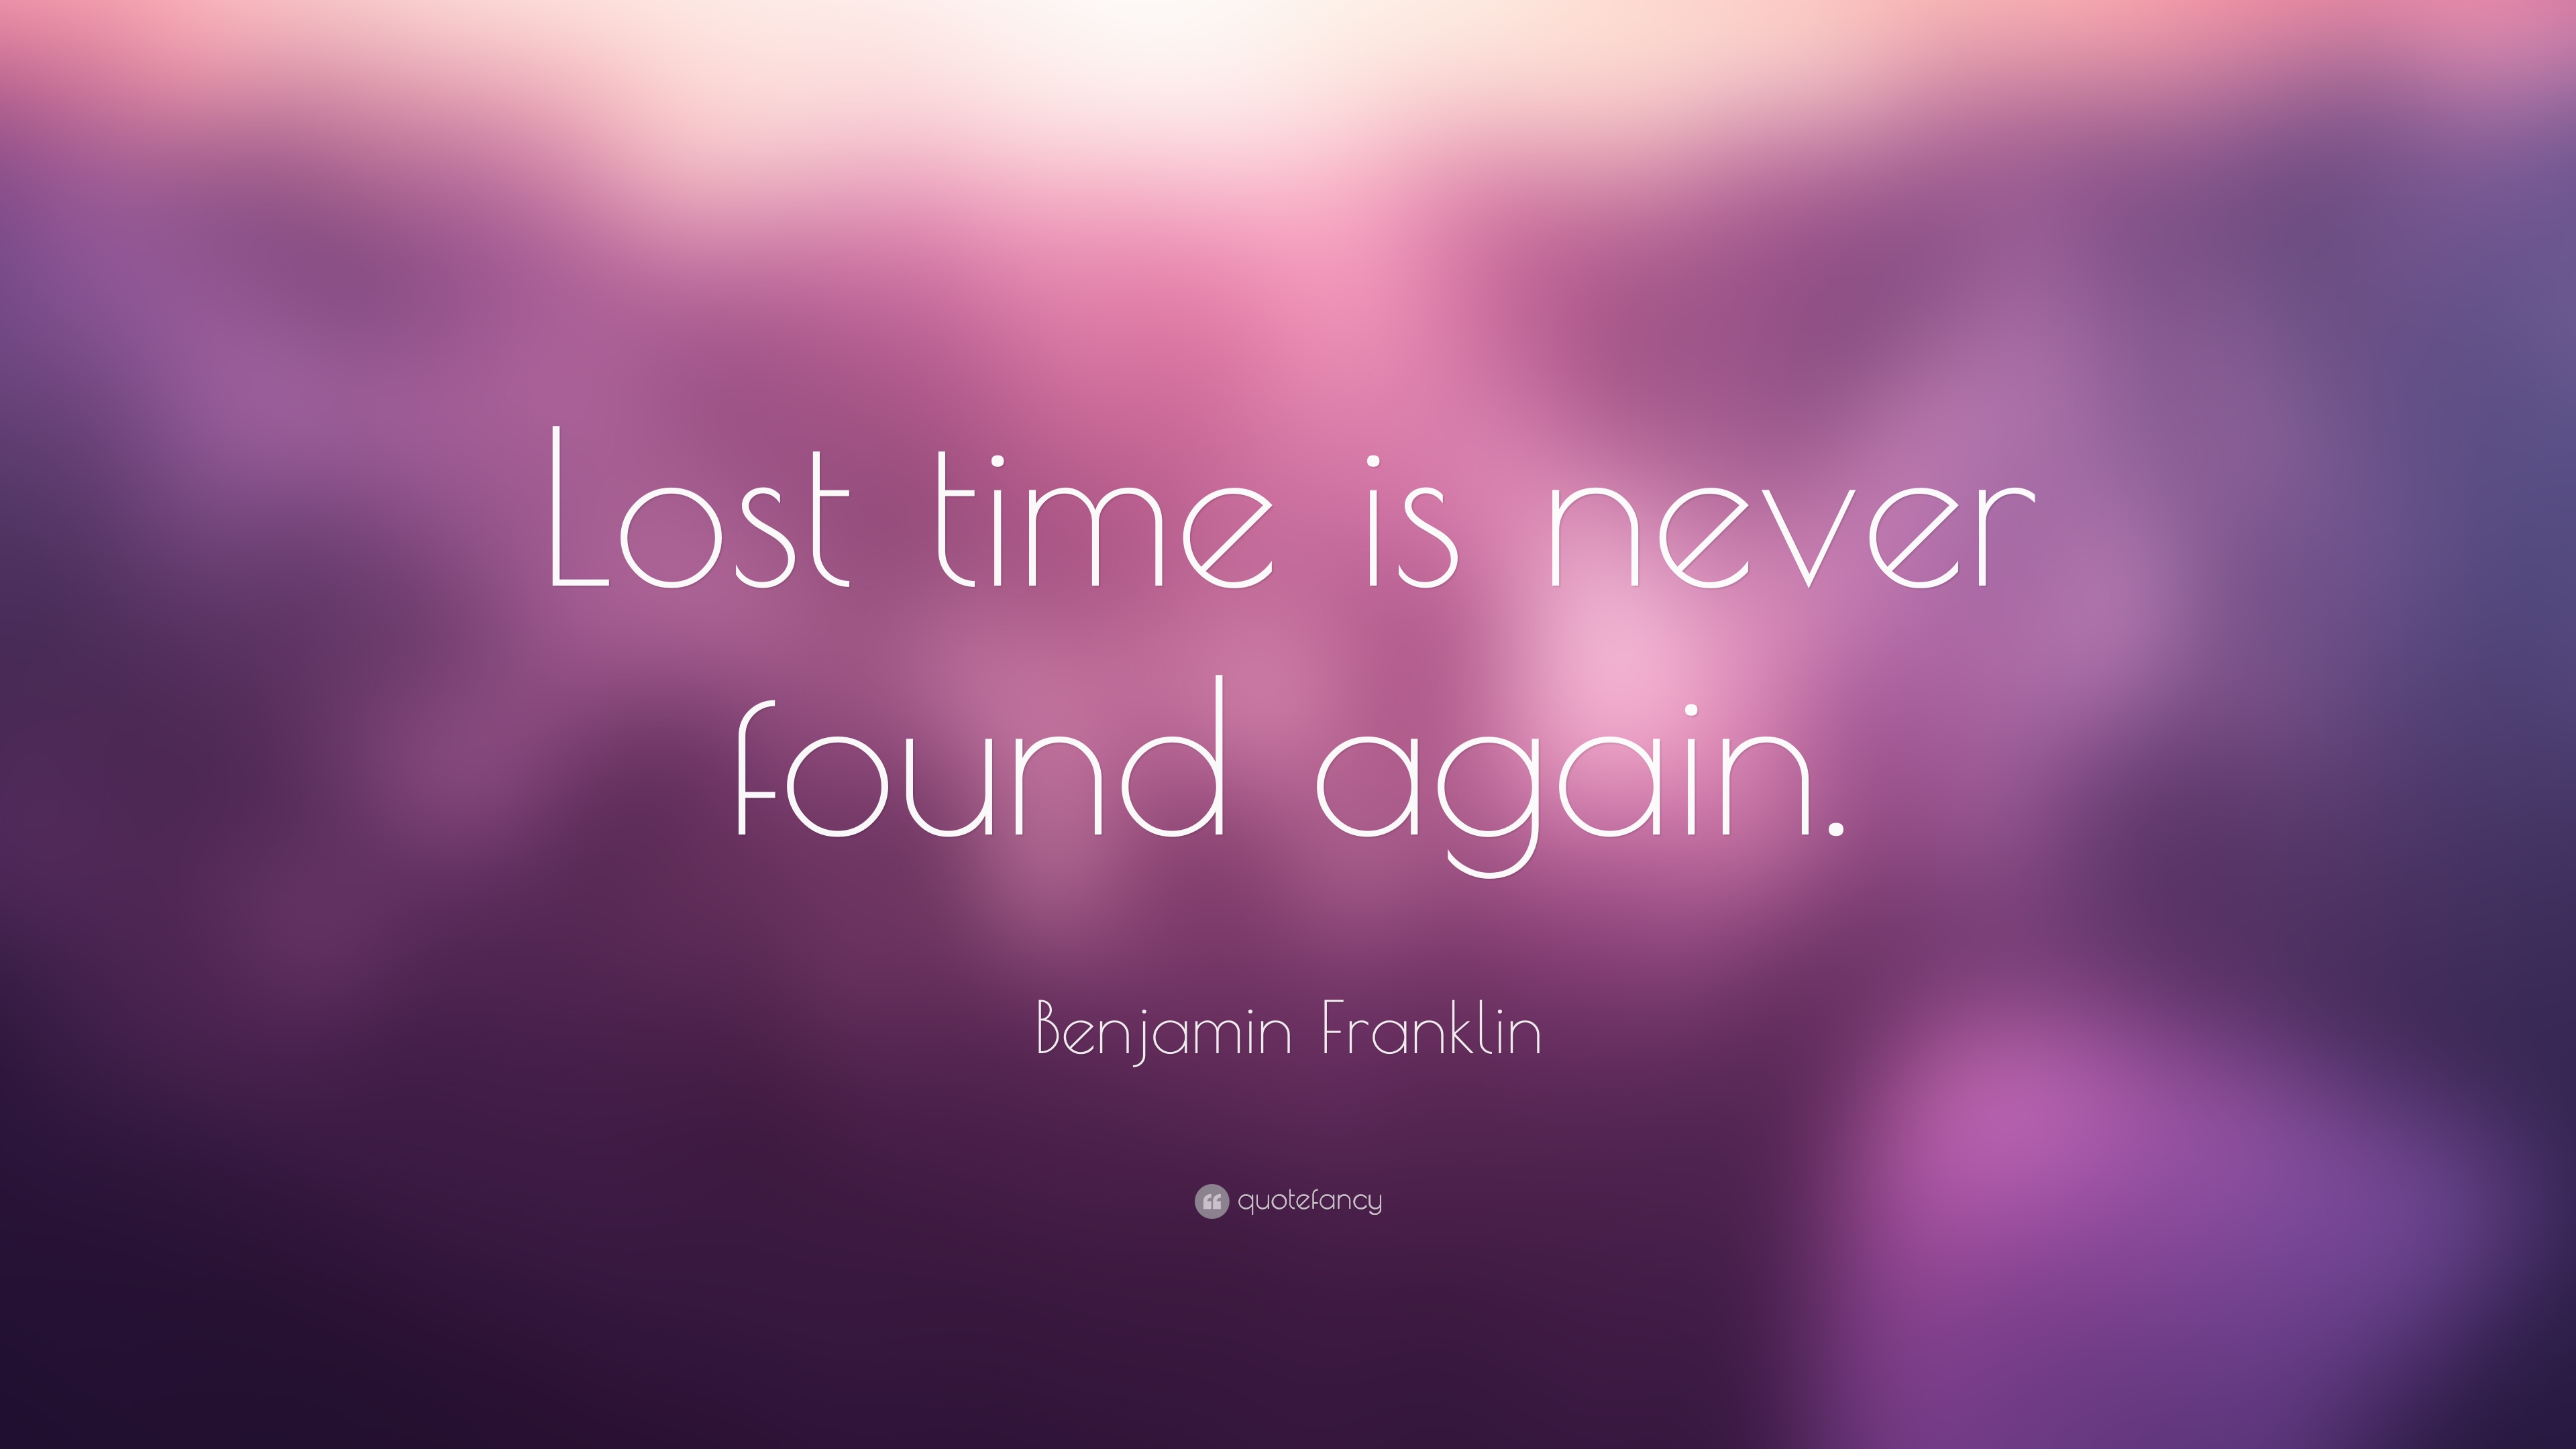 Lost time is never found again essay writer